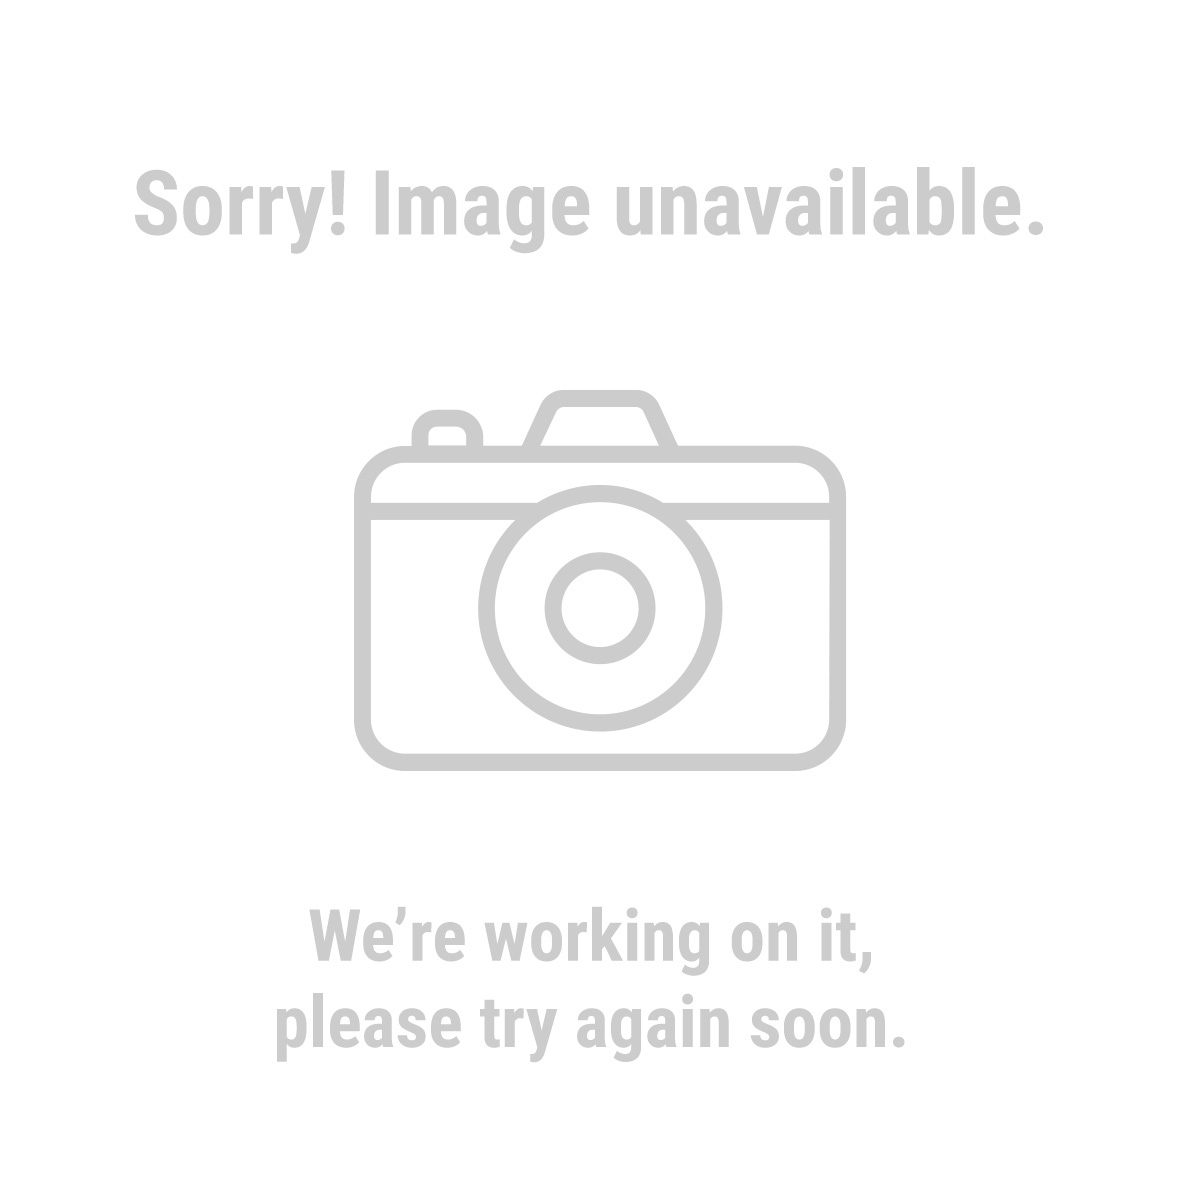 Warrior® 68872 15 Piece Woodworking Router Bit Set for Table Routers